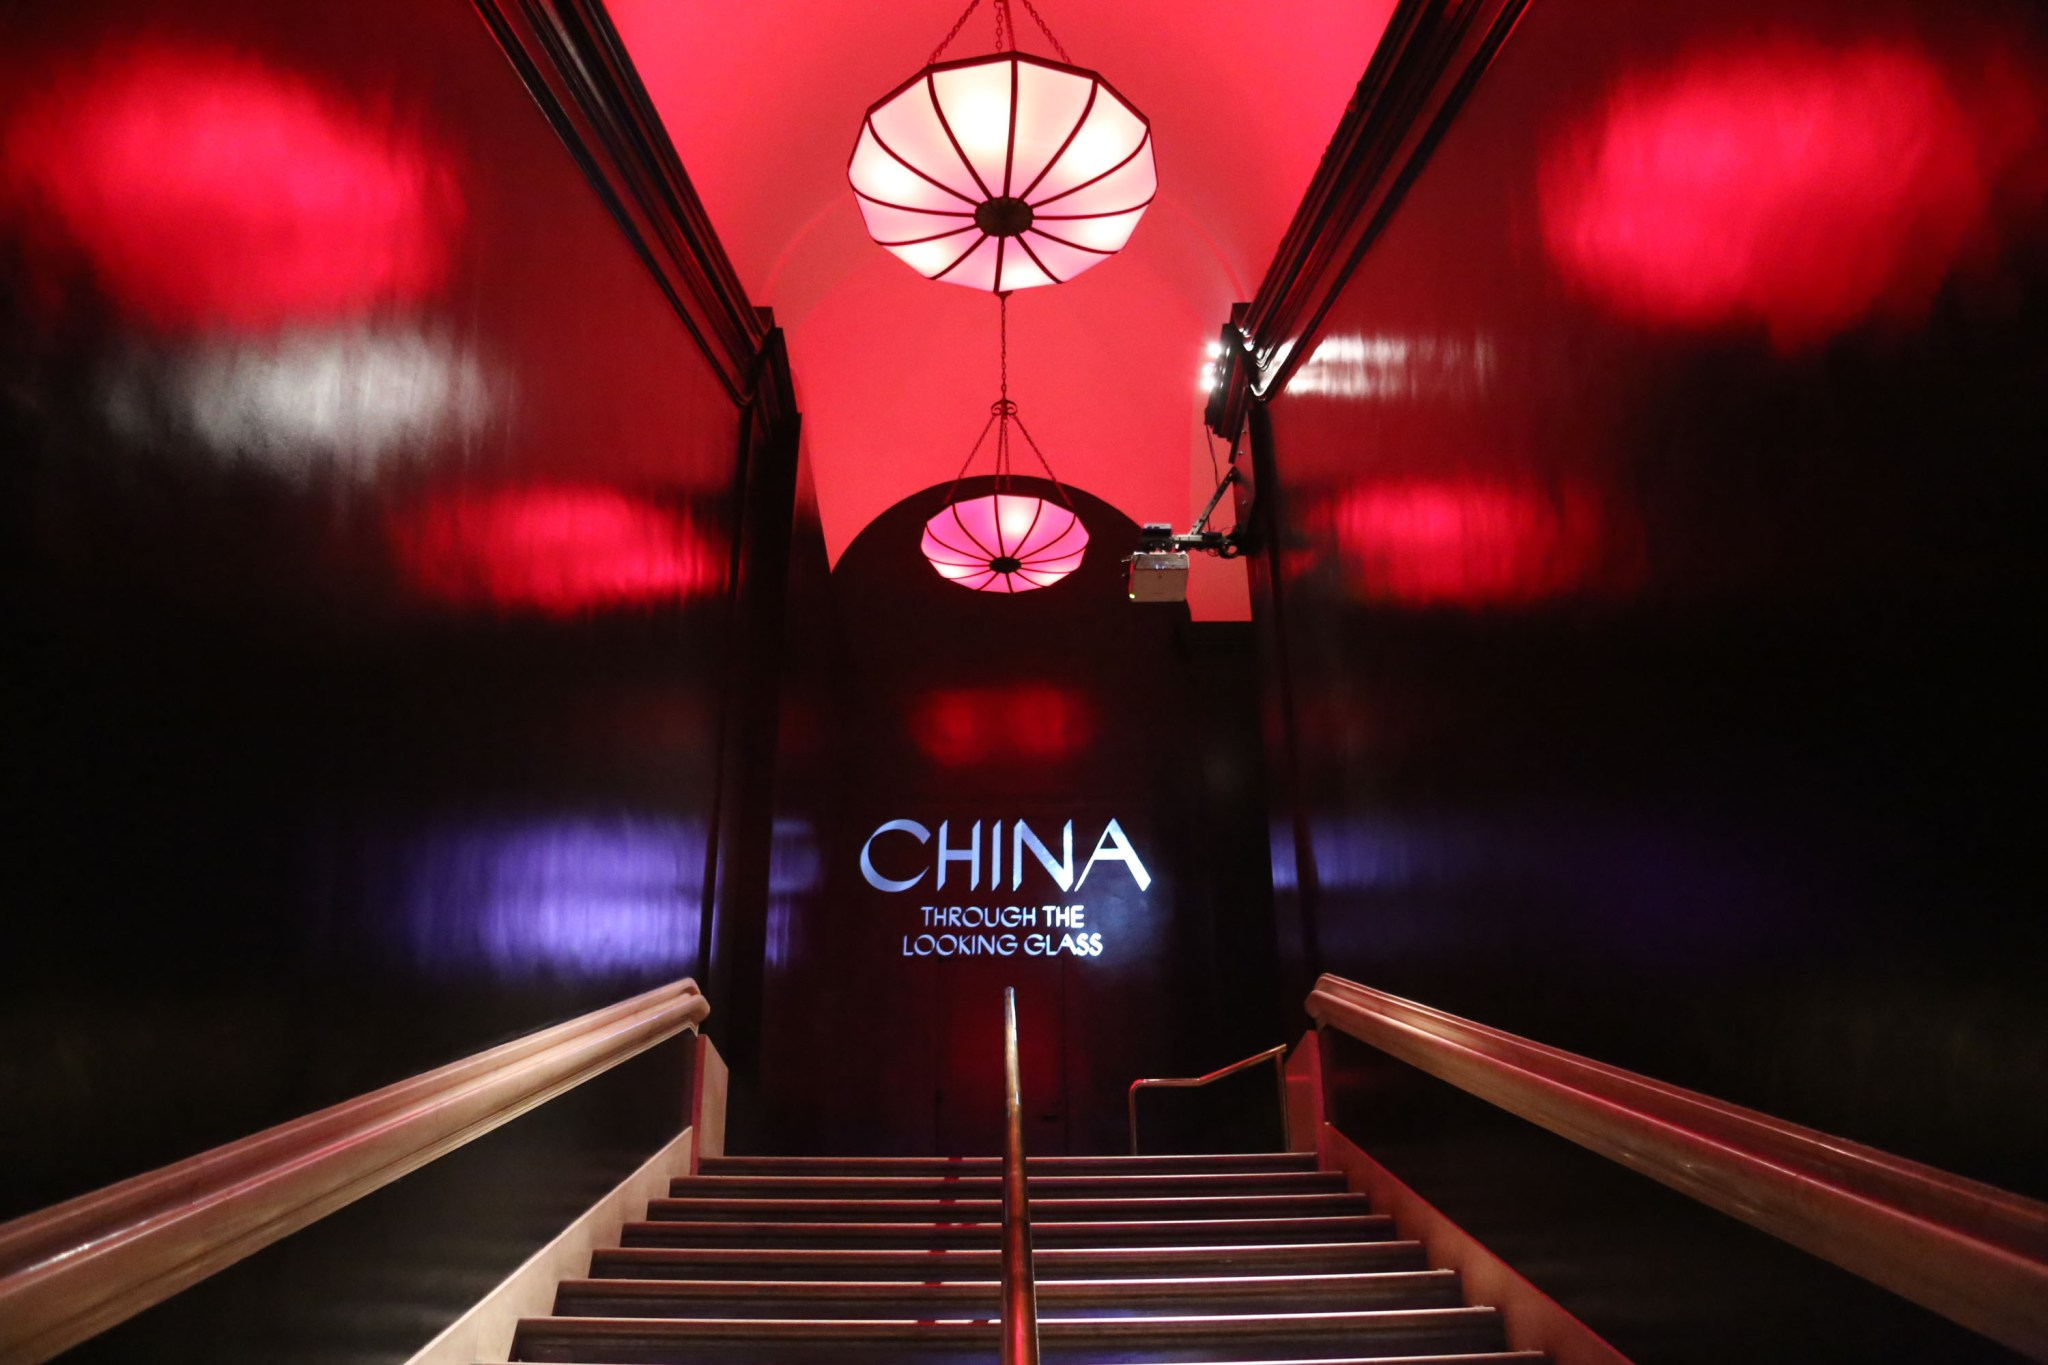 Met_Museum_China_Text projection at entry